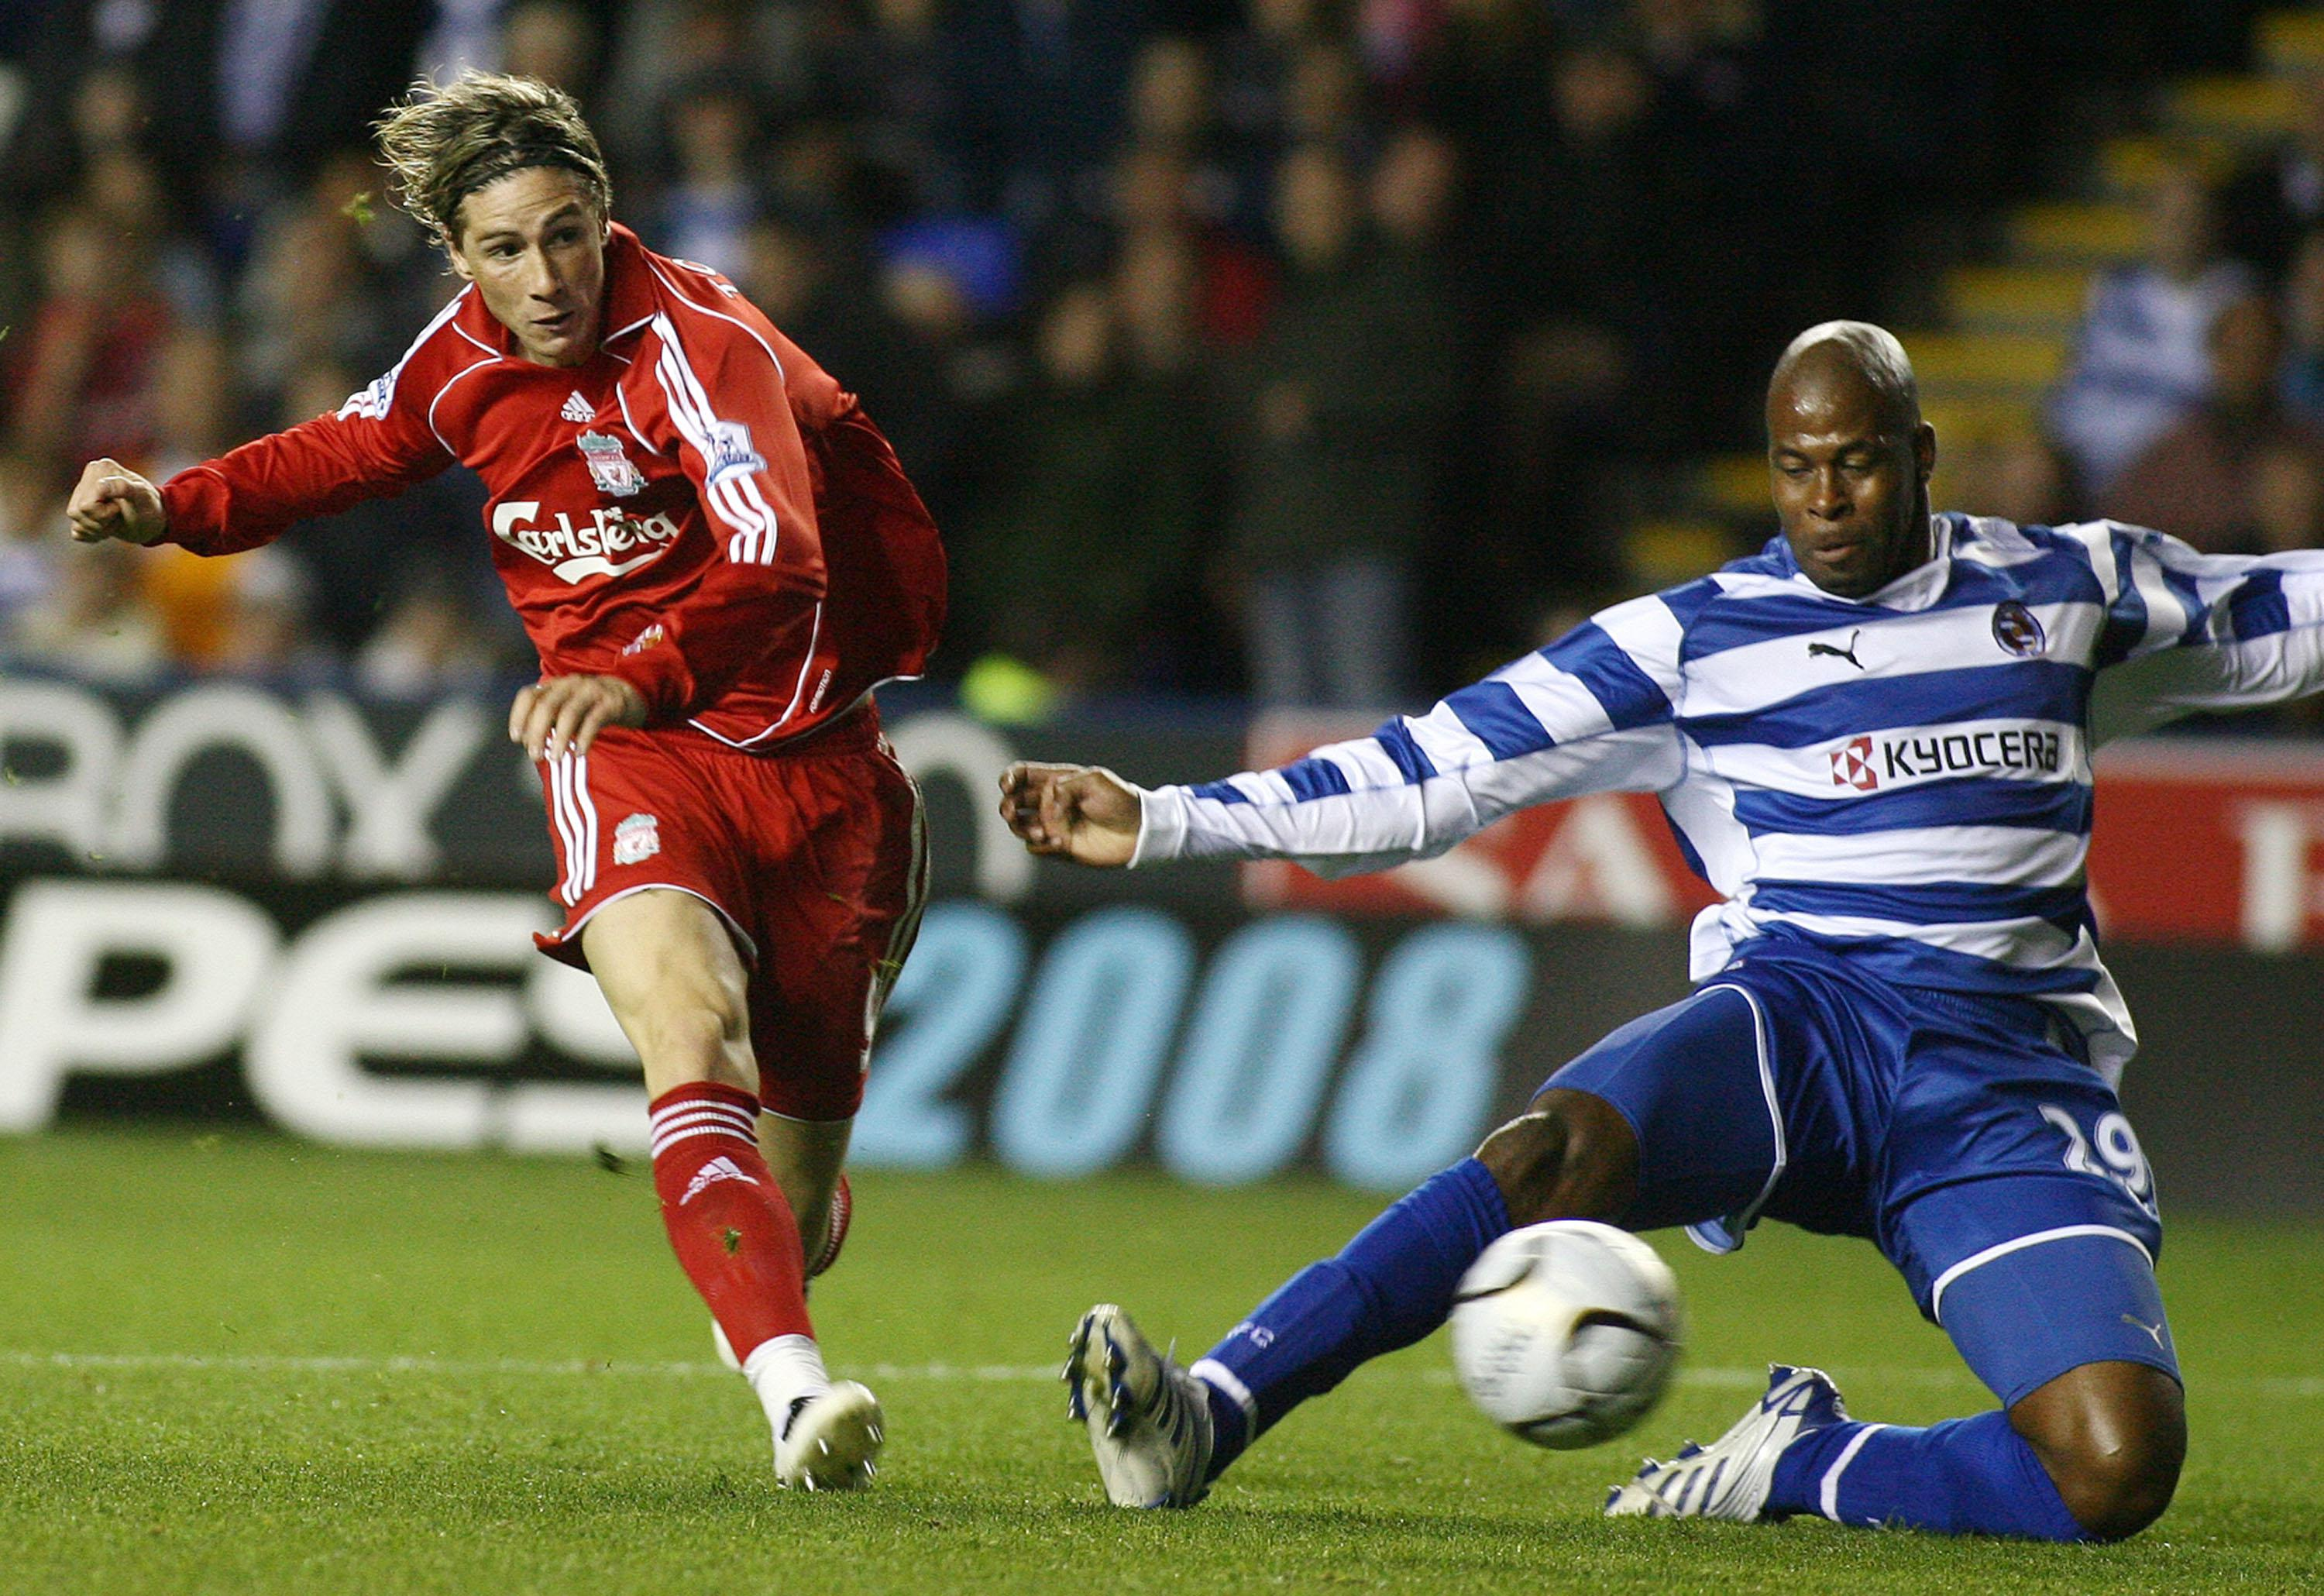 Torres scored a hat-trick against Reading almost a decade ago to the day